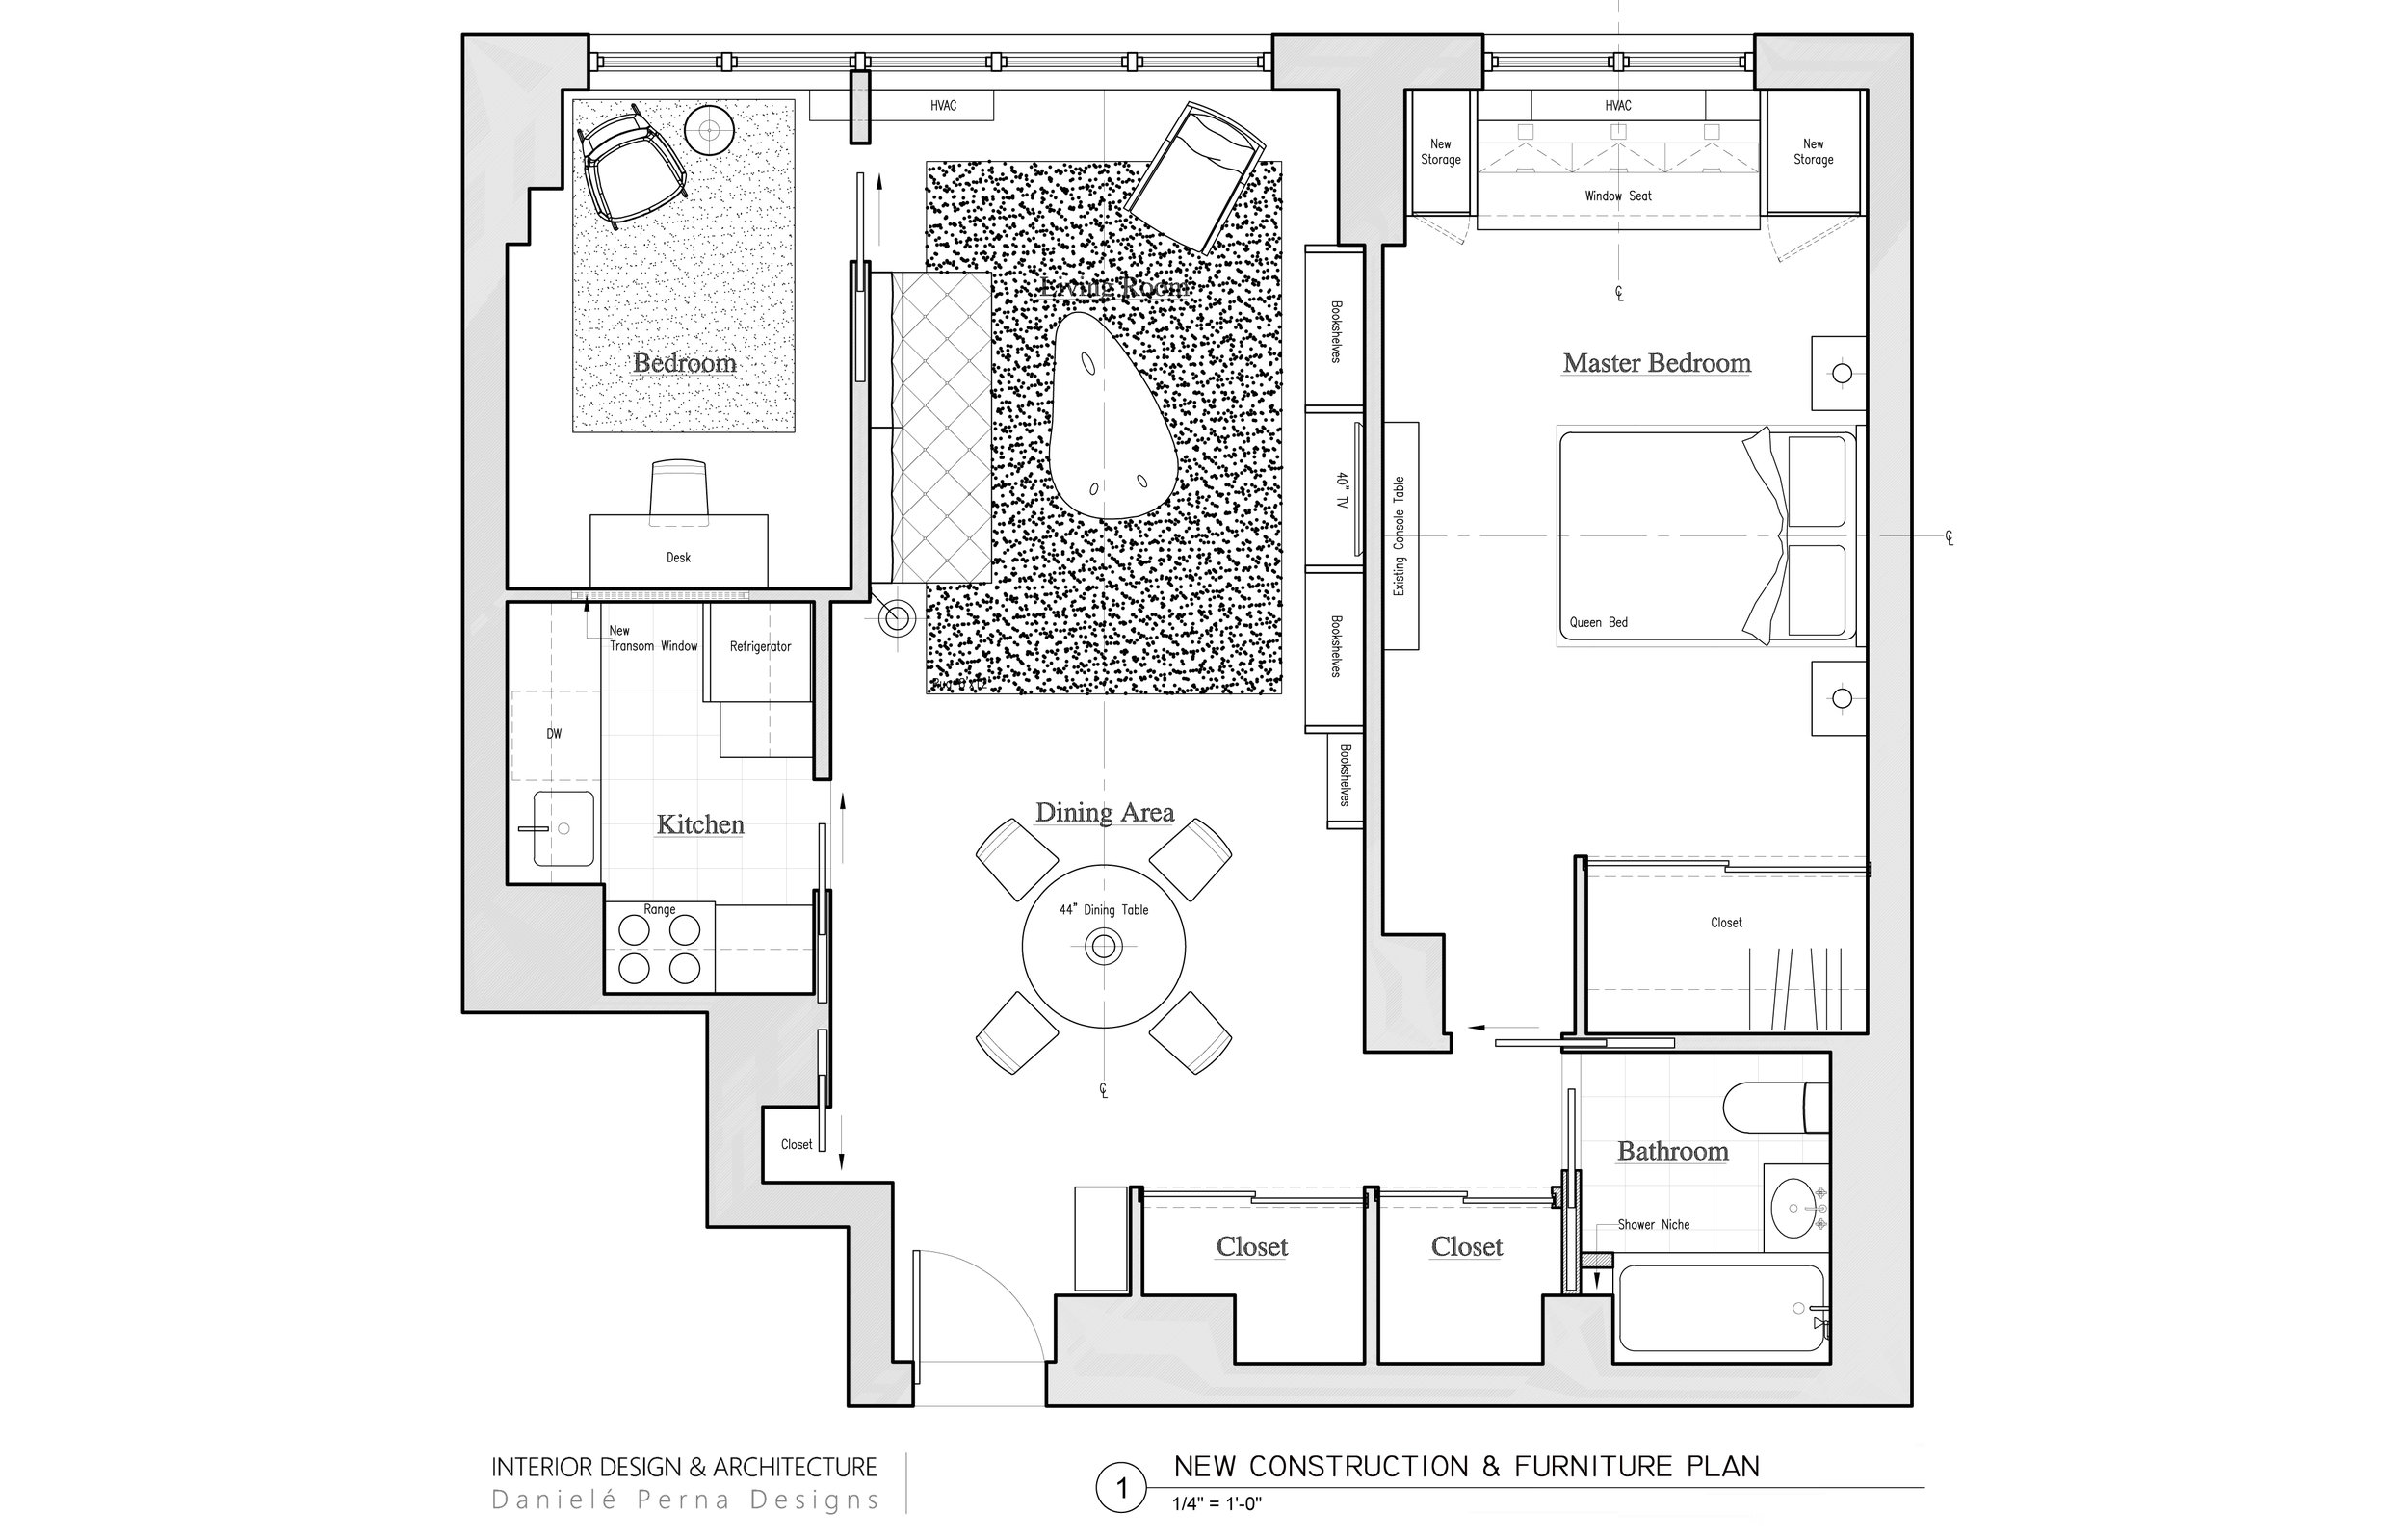 INTERIOR ARCHITECTURE: TWO BEDROOM RESIDENCE